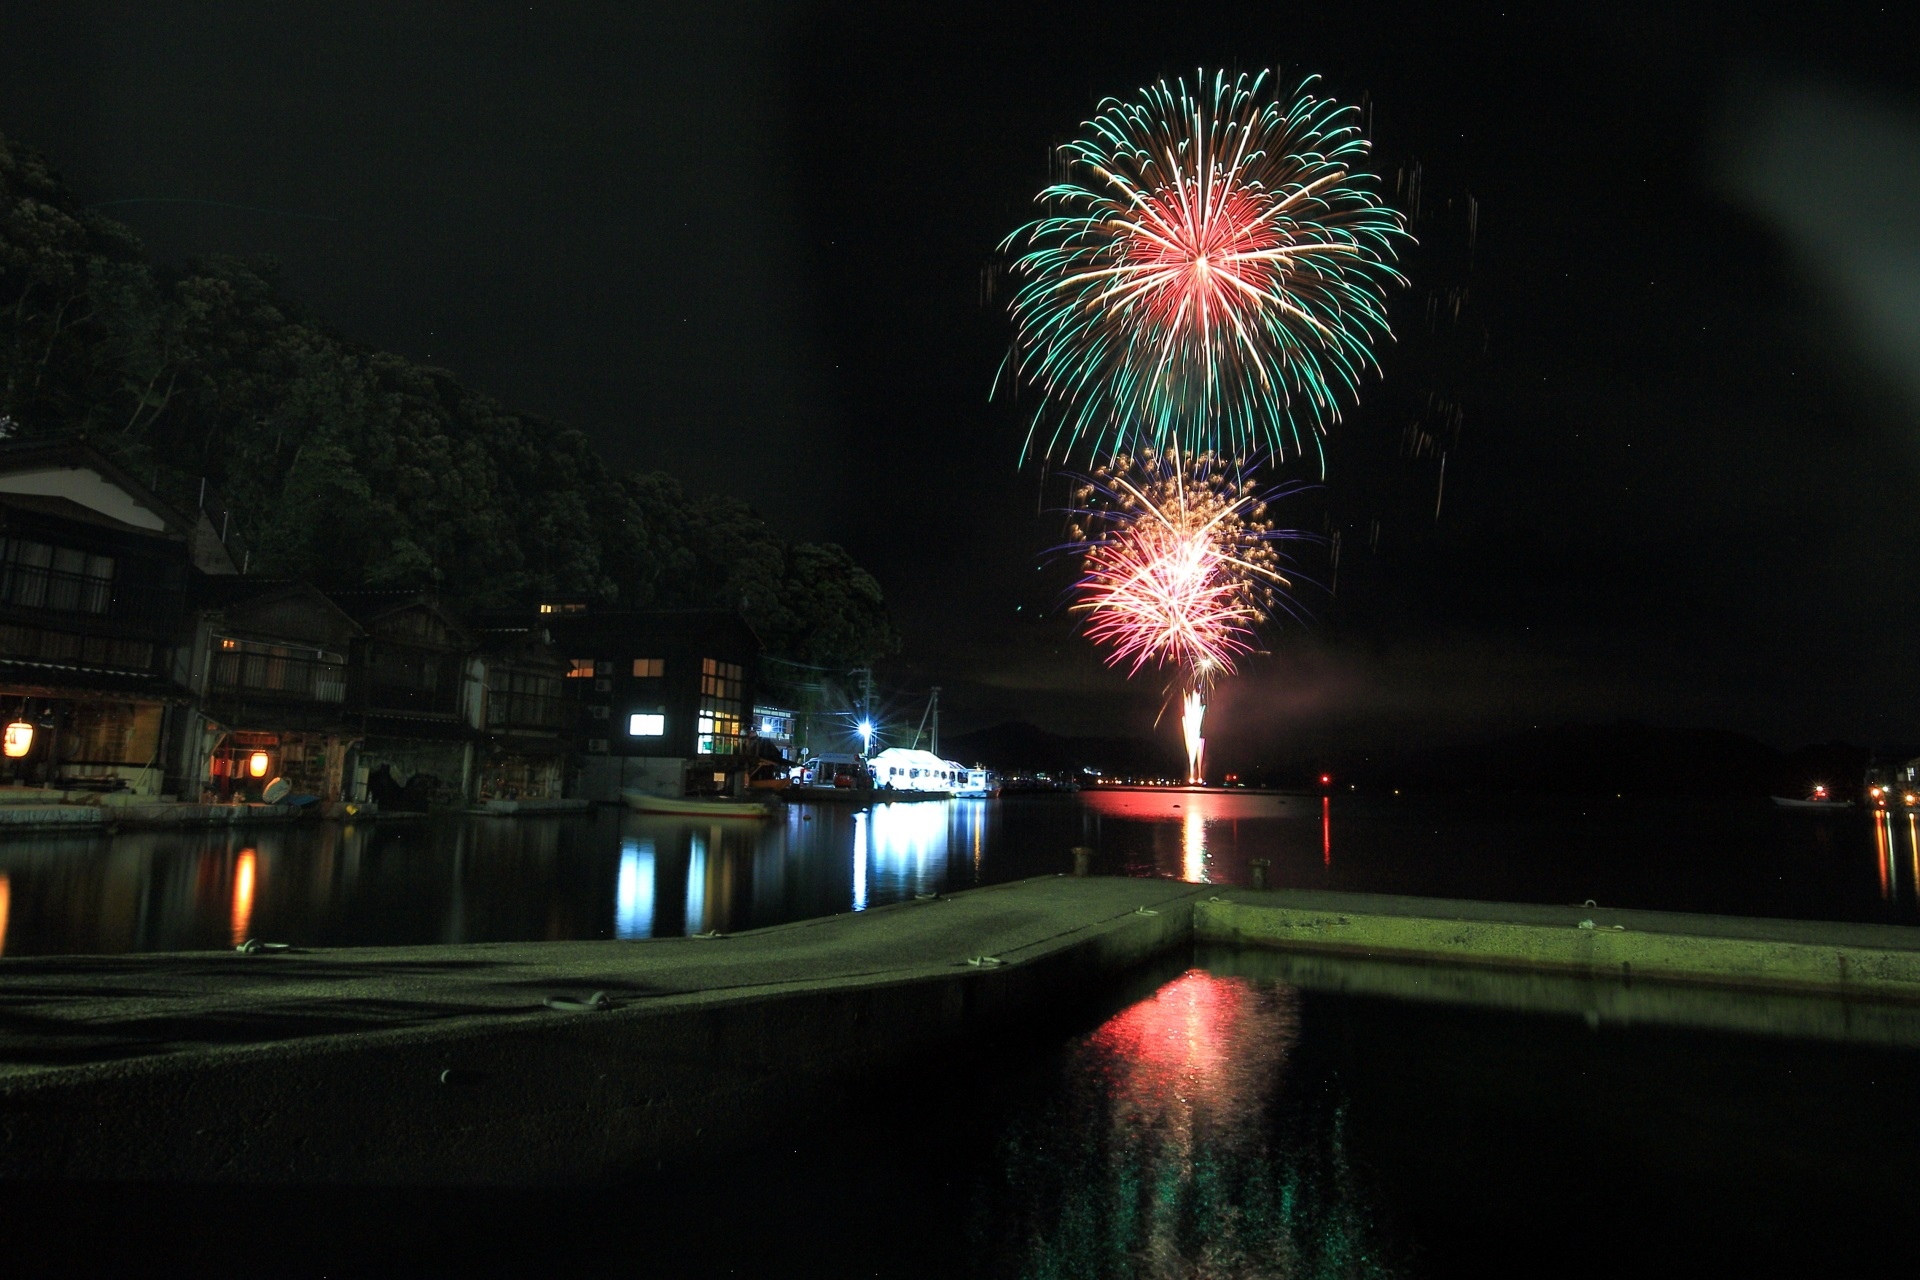 Ine-no-Funaya and colorful fireworks in Kyoto,Japan